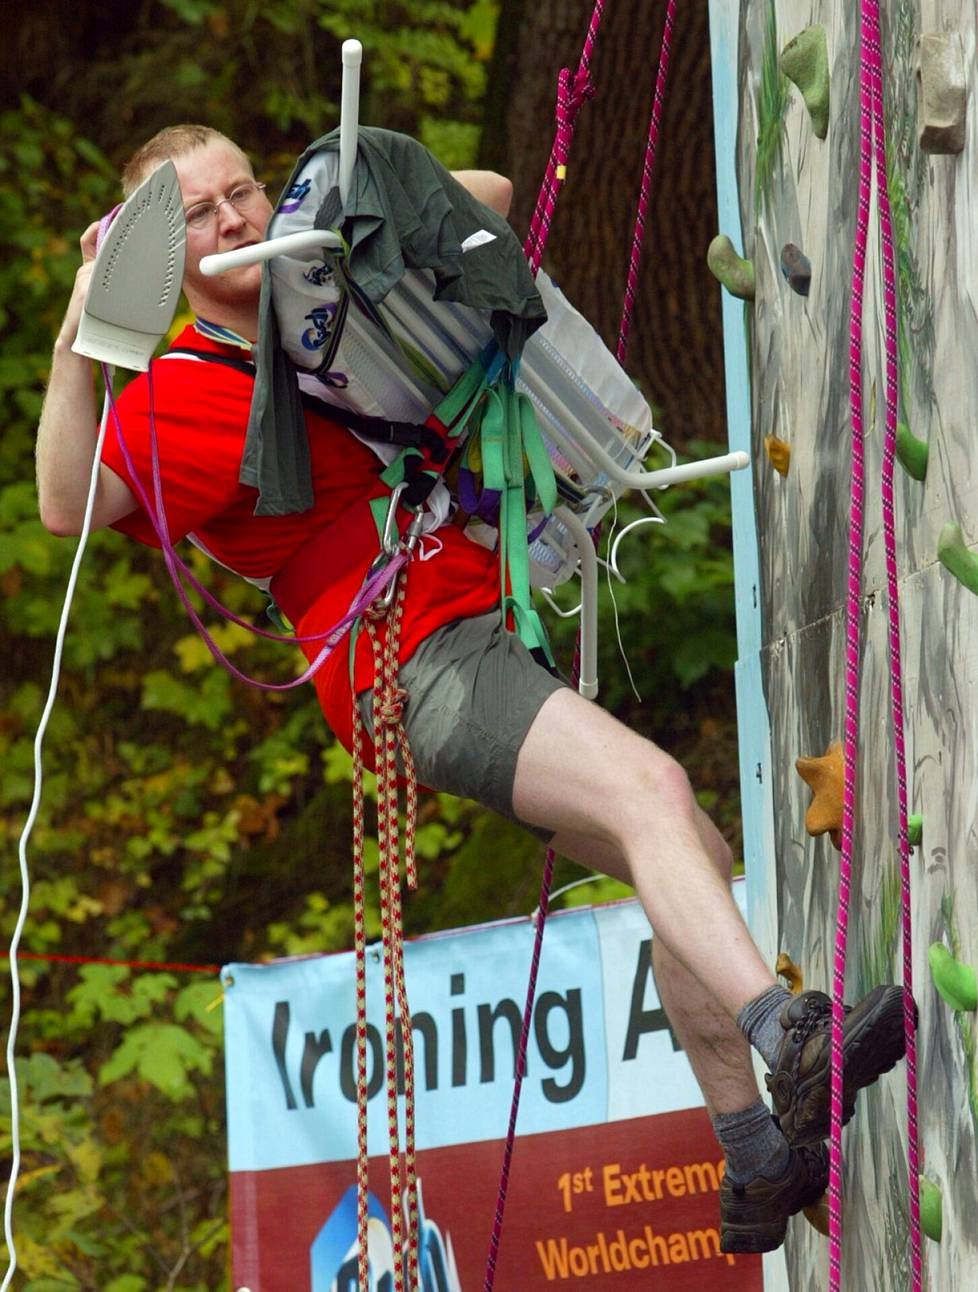 In connection with wall climbing, ironing was done at the World Championships in Extreme Ironing in 2002.